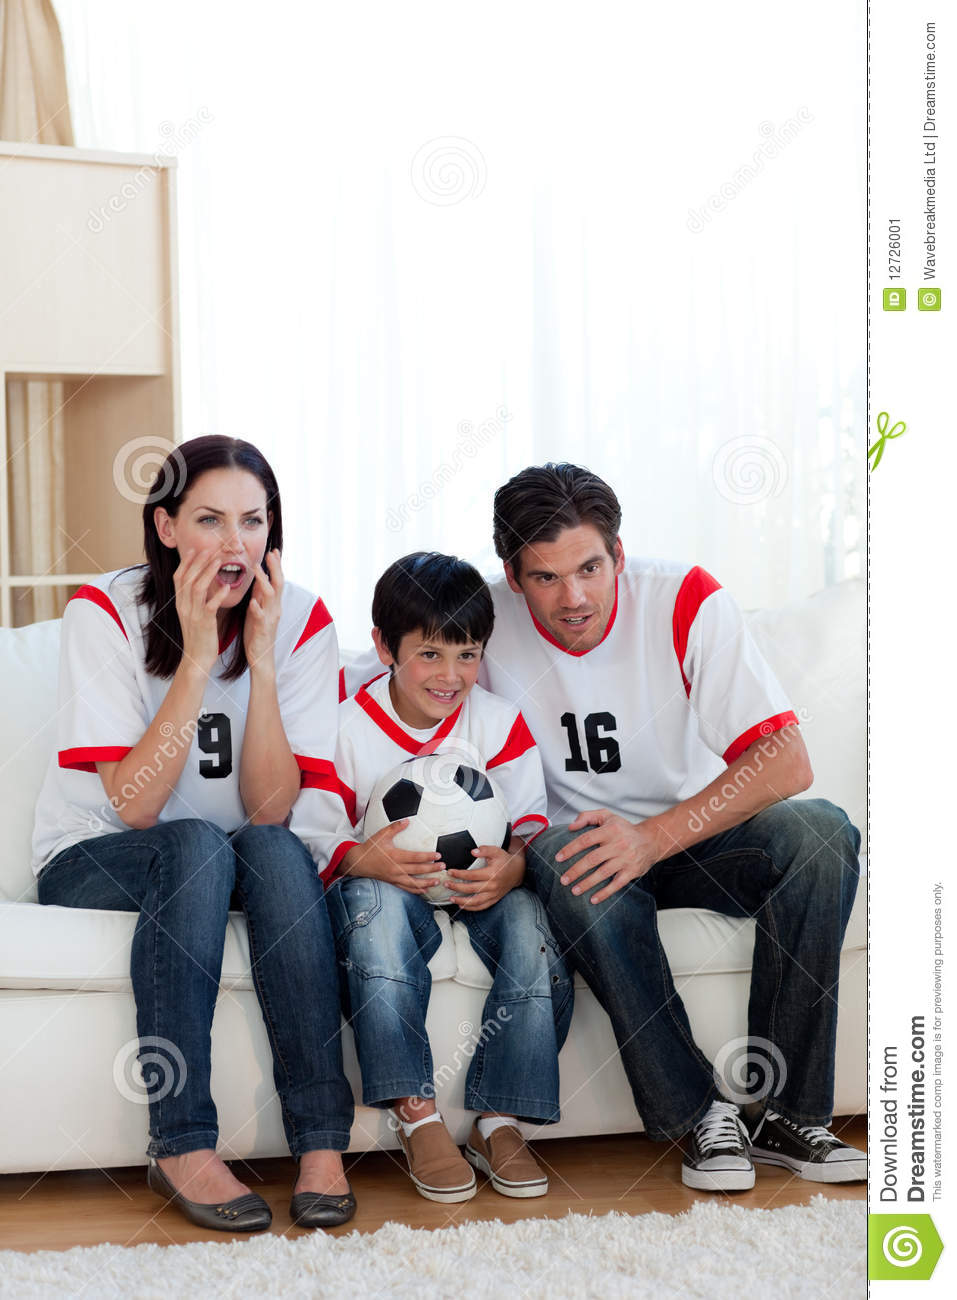 Concentrated Family Watching Football Match Stock Image ...